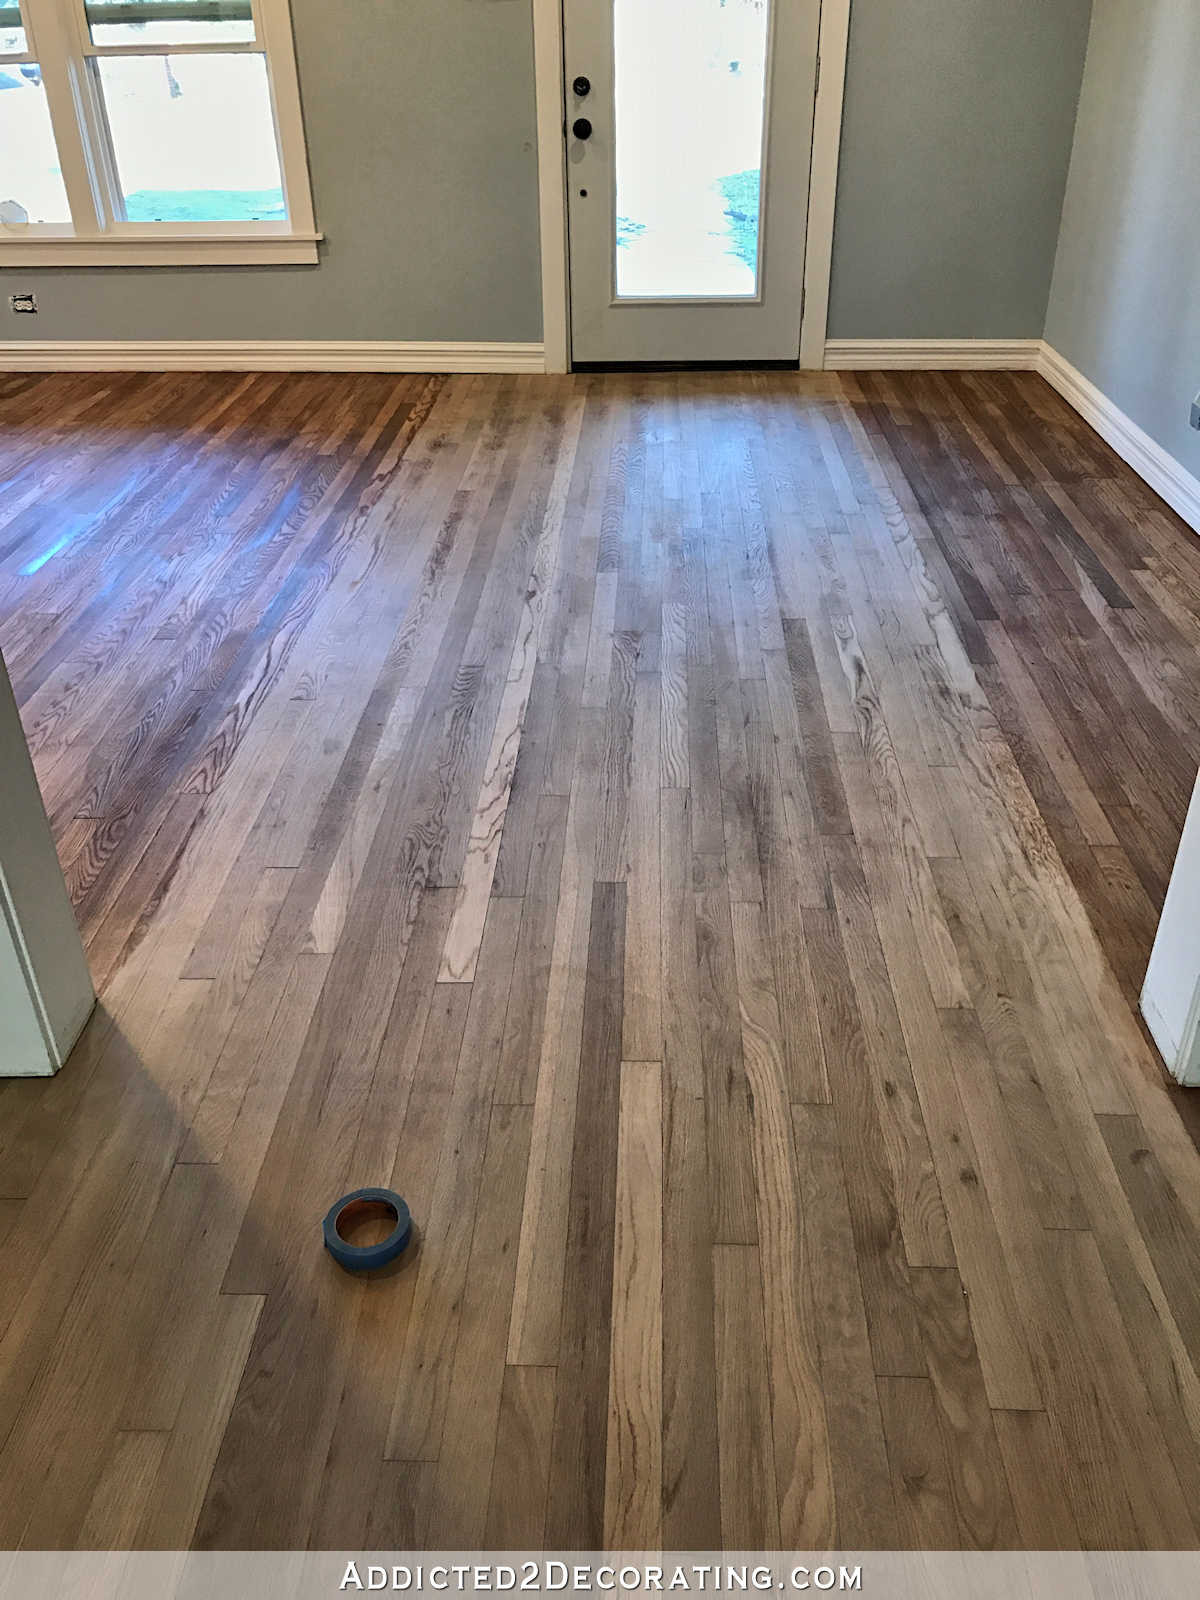 Selecting Hardwood Floor Color Of Adventures In Staining My Red Oak Hardwood Floors Products Process In Staining Red Oak Hardwood Floors 4 Entryway and Living Room Wood Conditioner